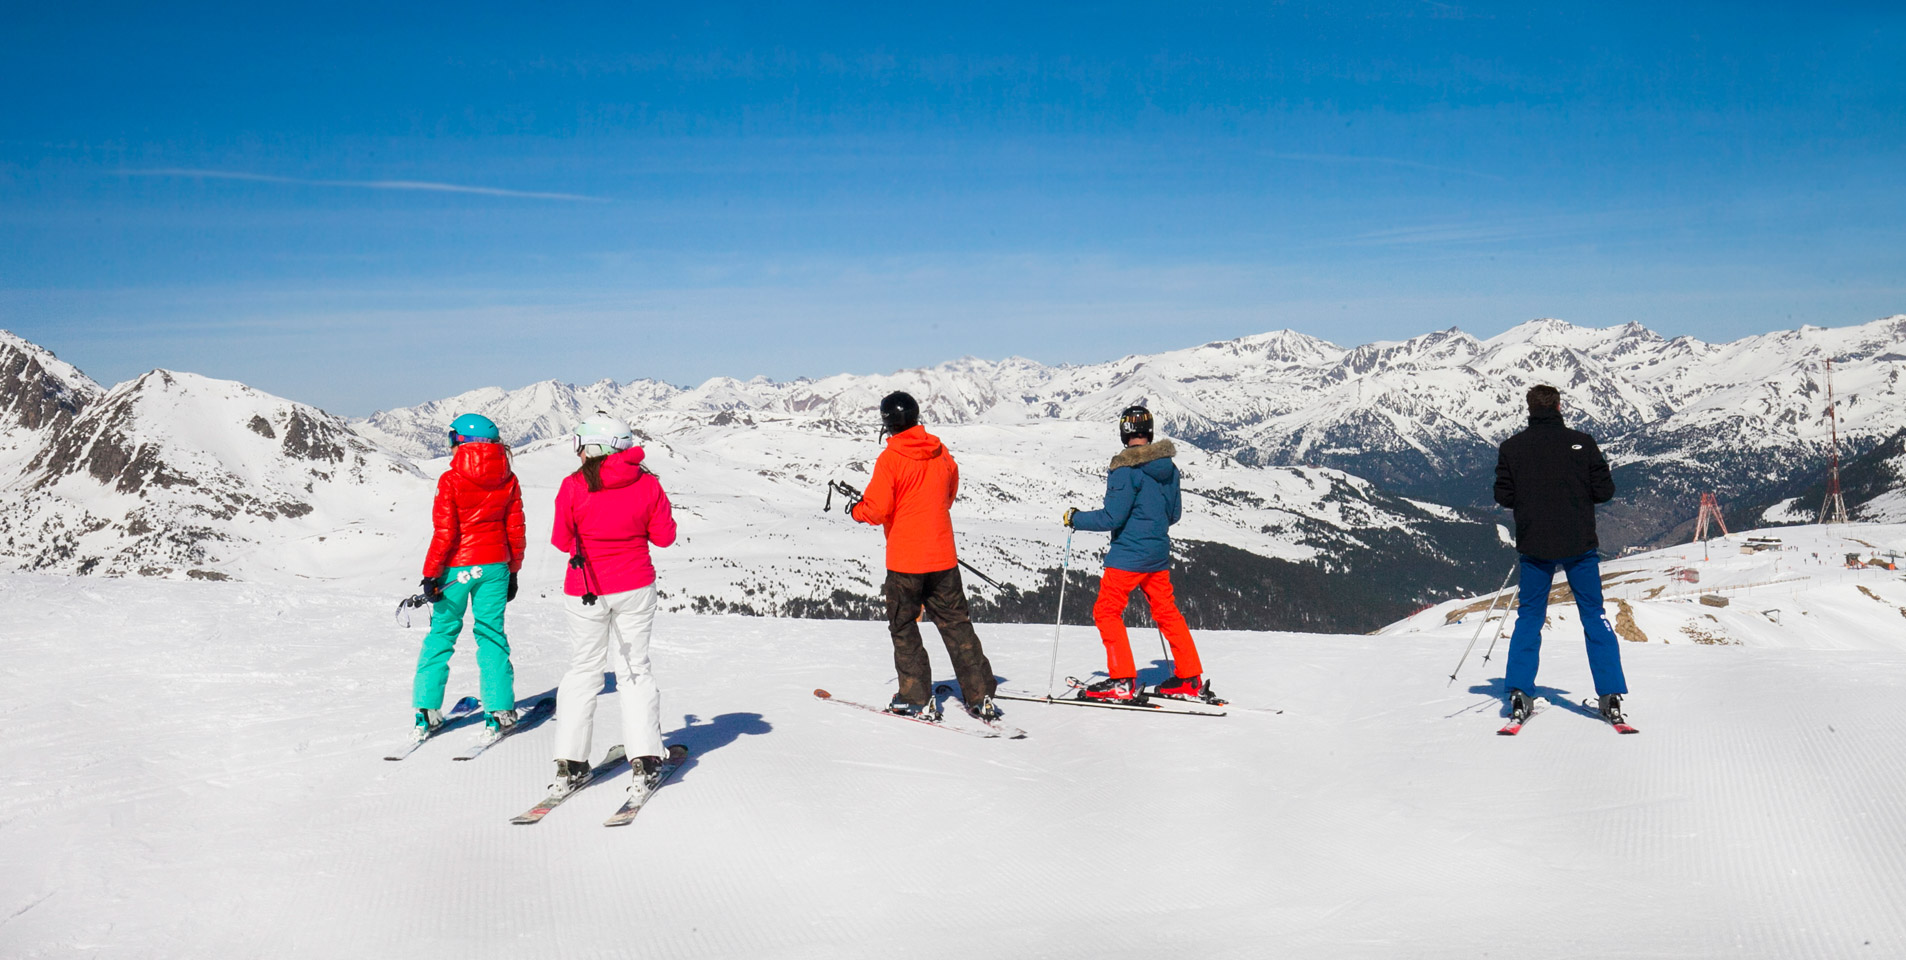 ANDORRA: BETTER WITH FRIENDS!